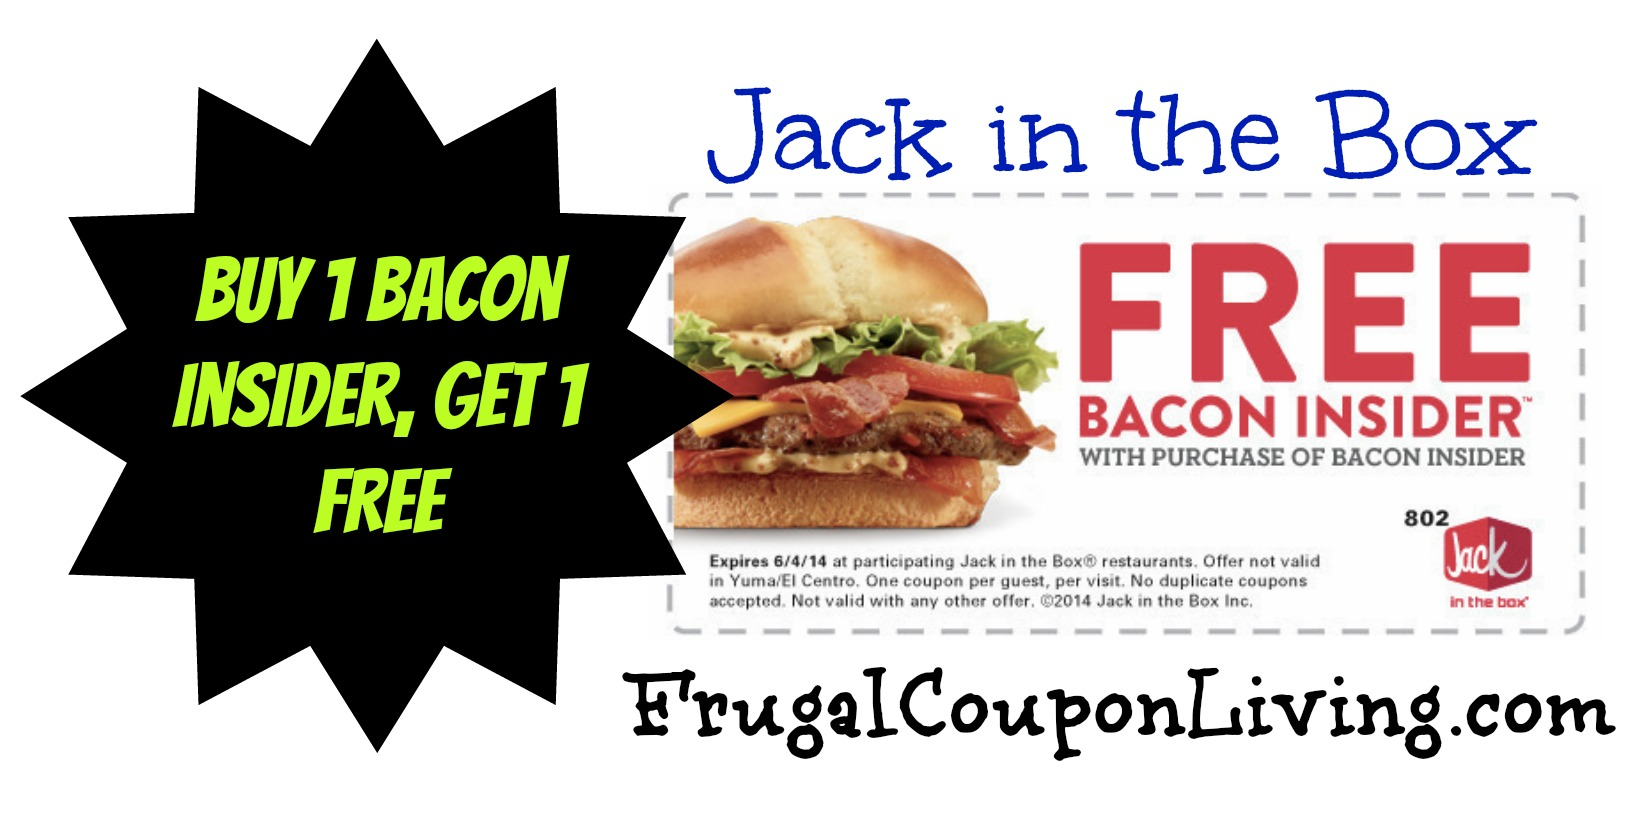 Jack In The Box Coupon For A Free Bacon Insider